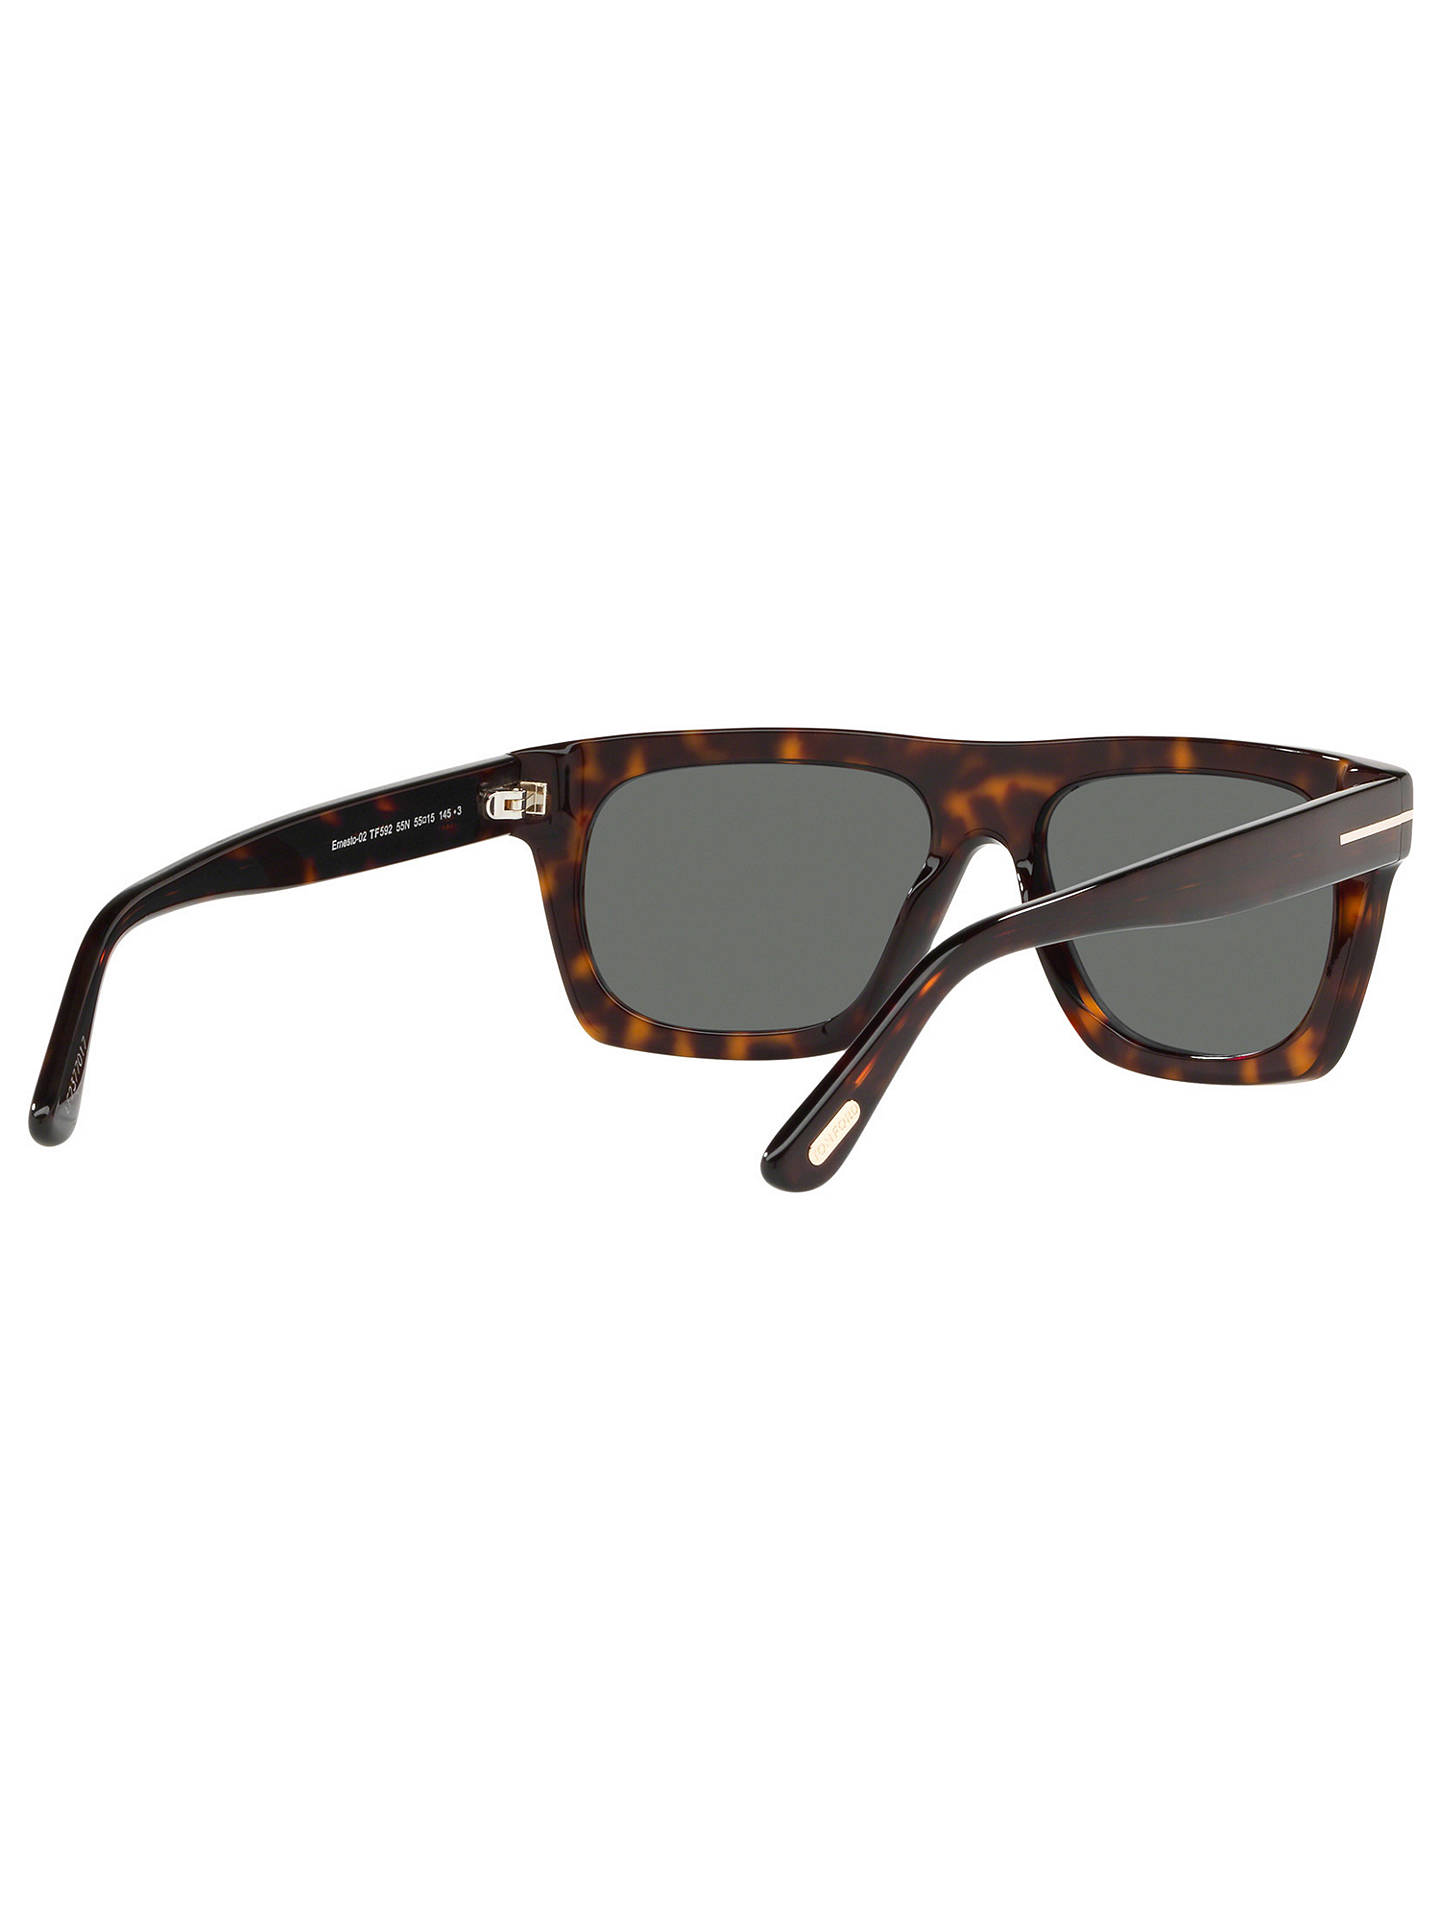 BuyTOM FORD FT0592 Men's Ernesio-02 Square Sunglasses, Tortoise/Grey Online at johnlewis.com